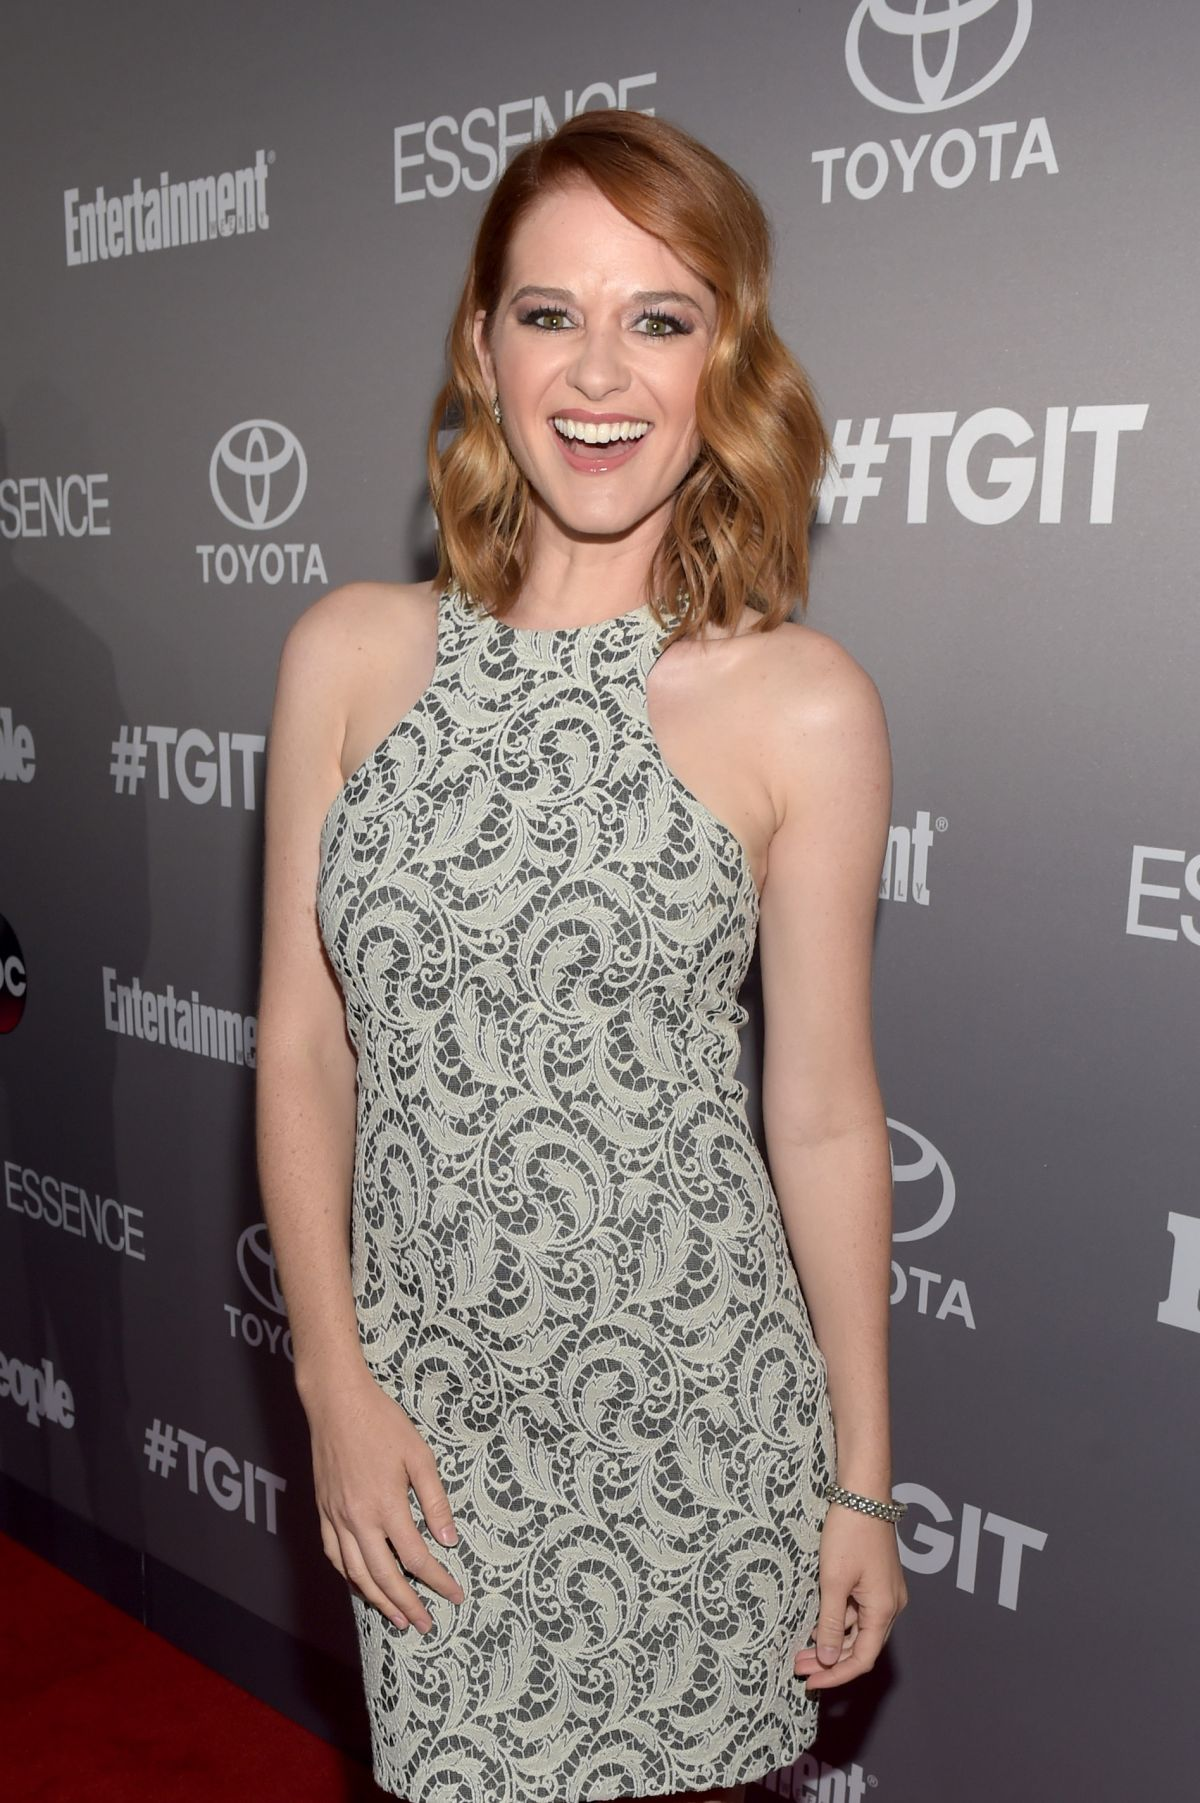 SARAH DREW at ABC's Tgit Line-up Celebration in West Hollywood 09/26/2015